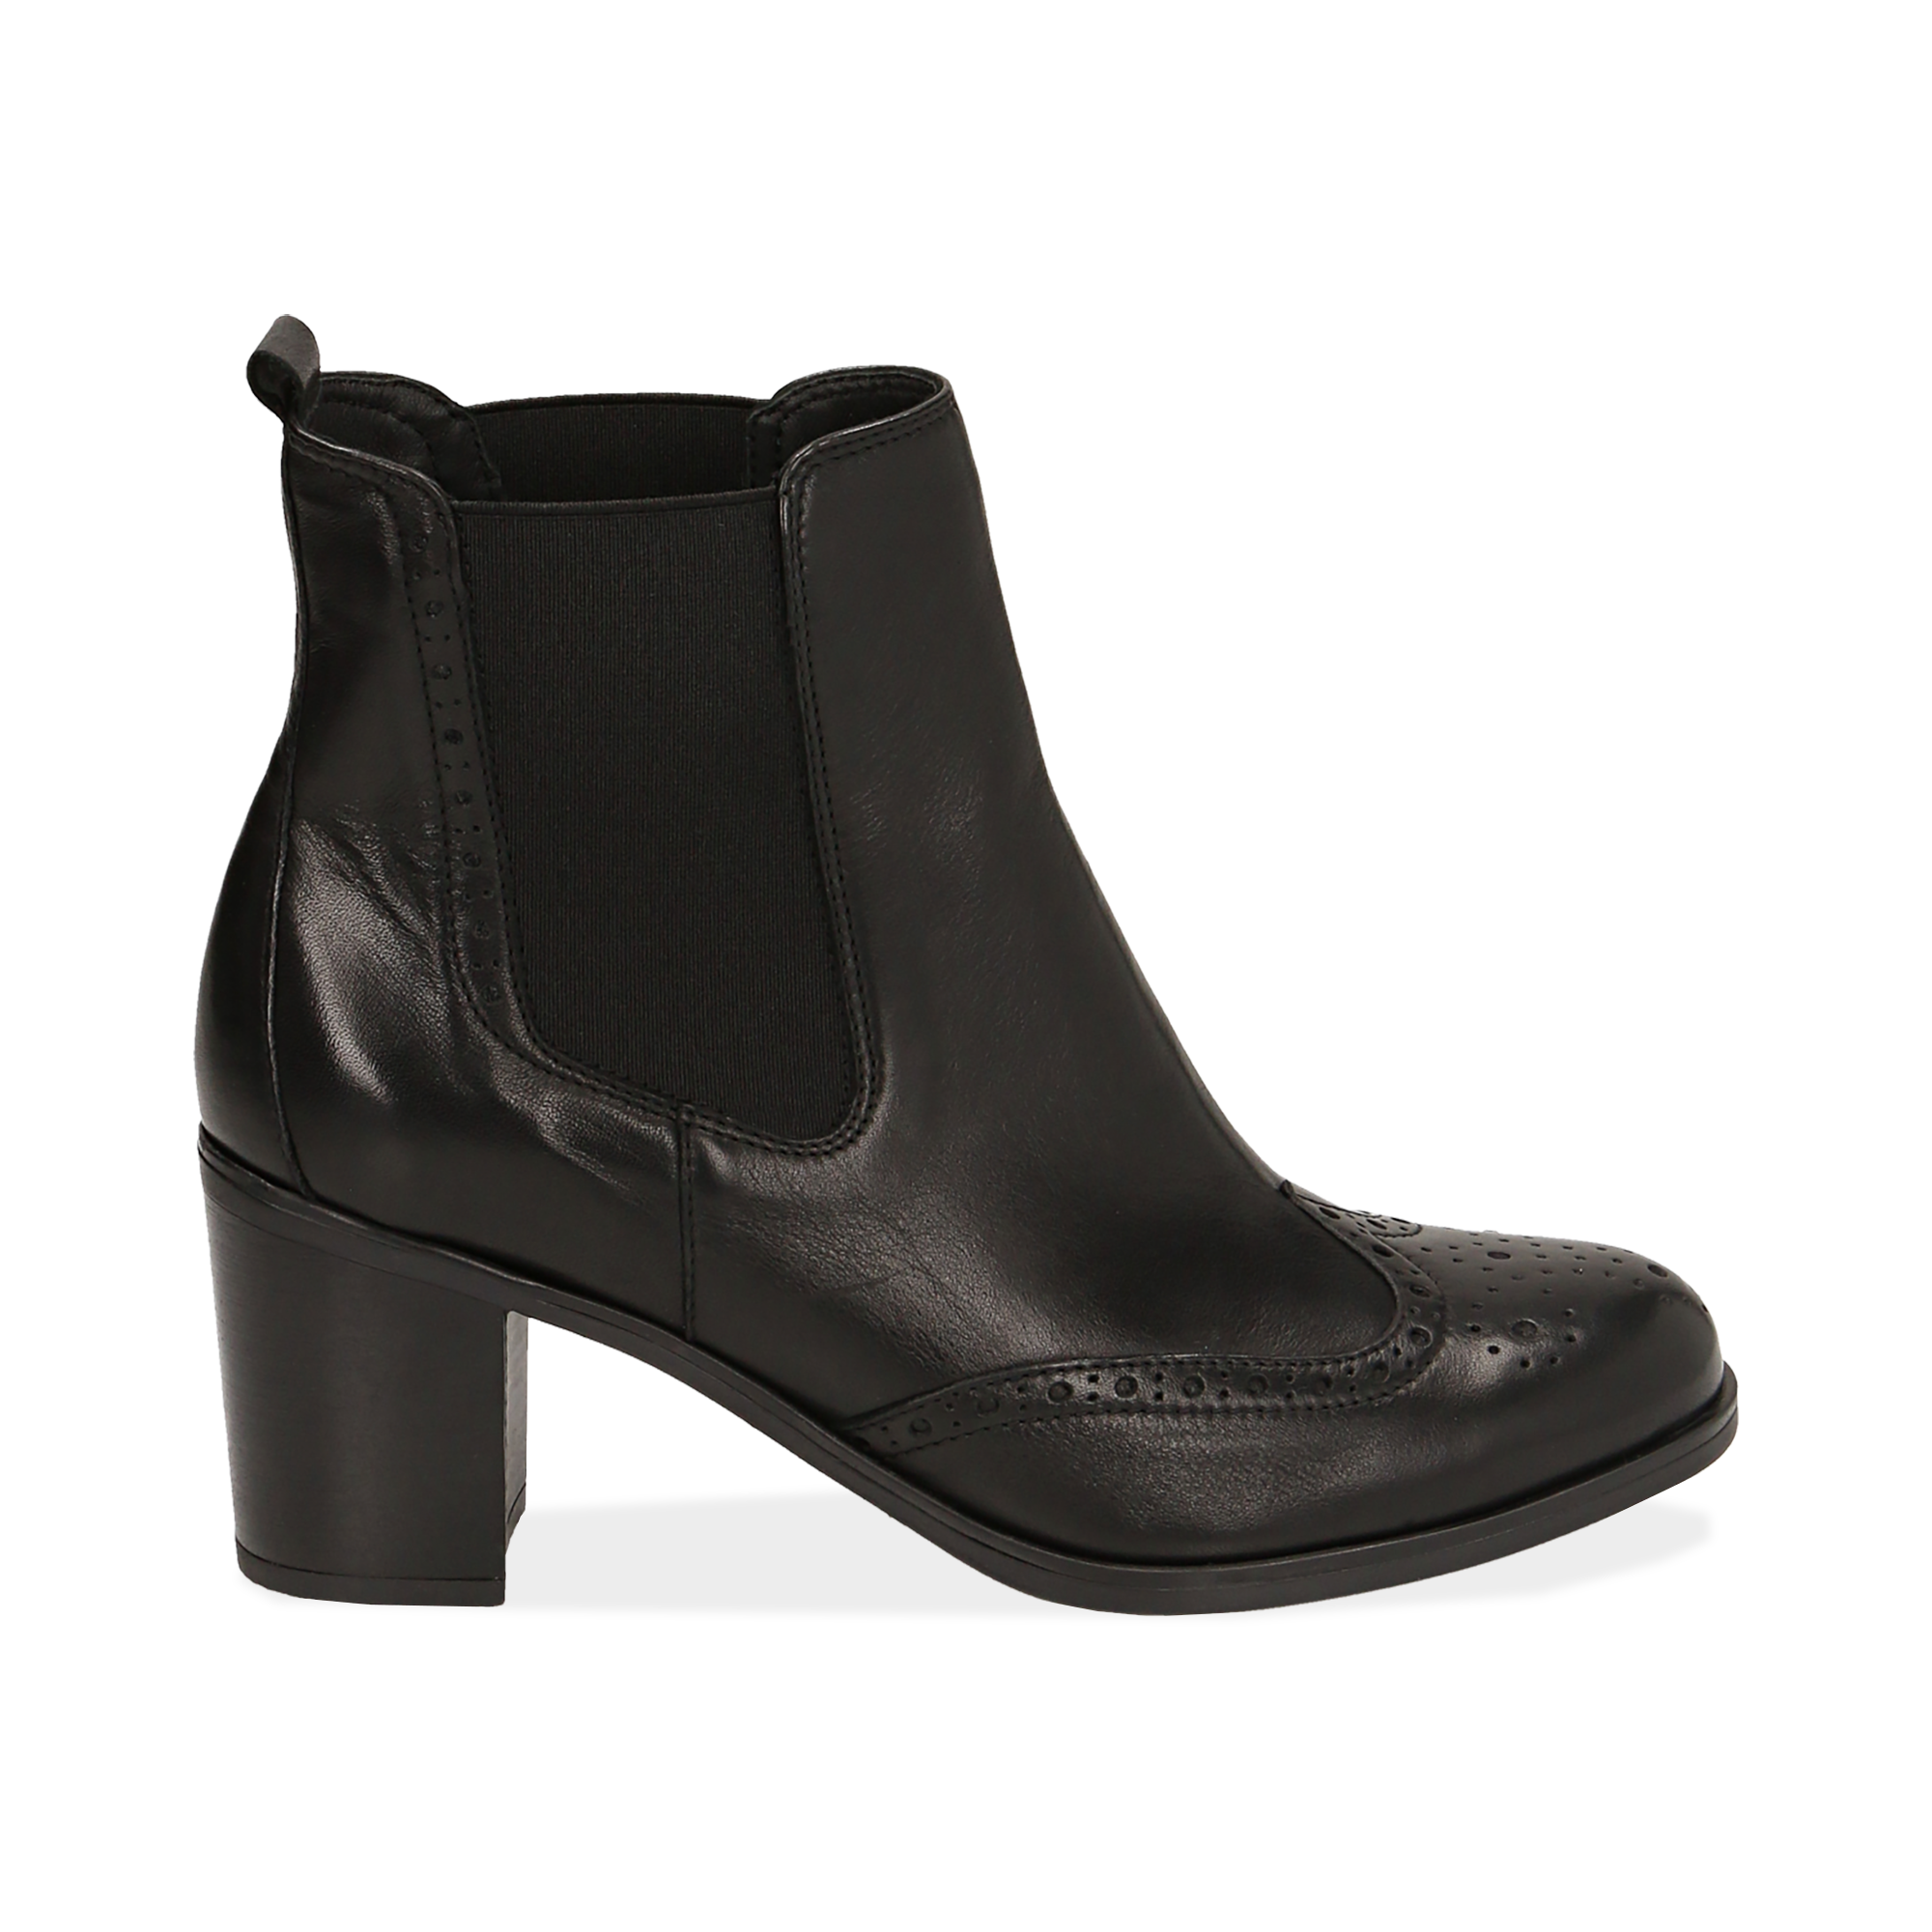 Ankle boots neri in pelle, tacco 7,50 cm